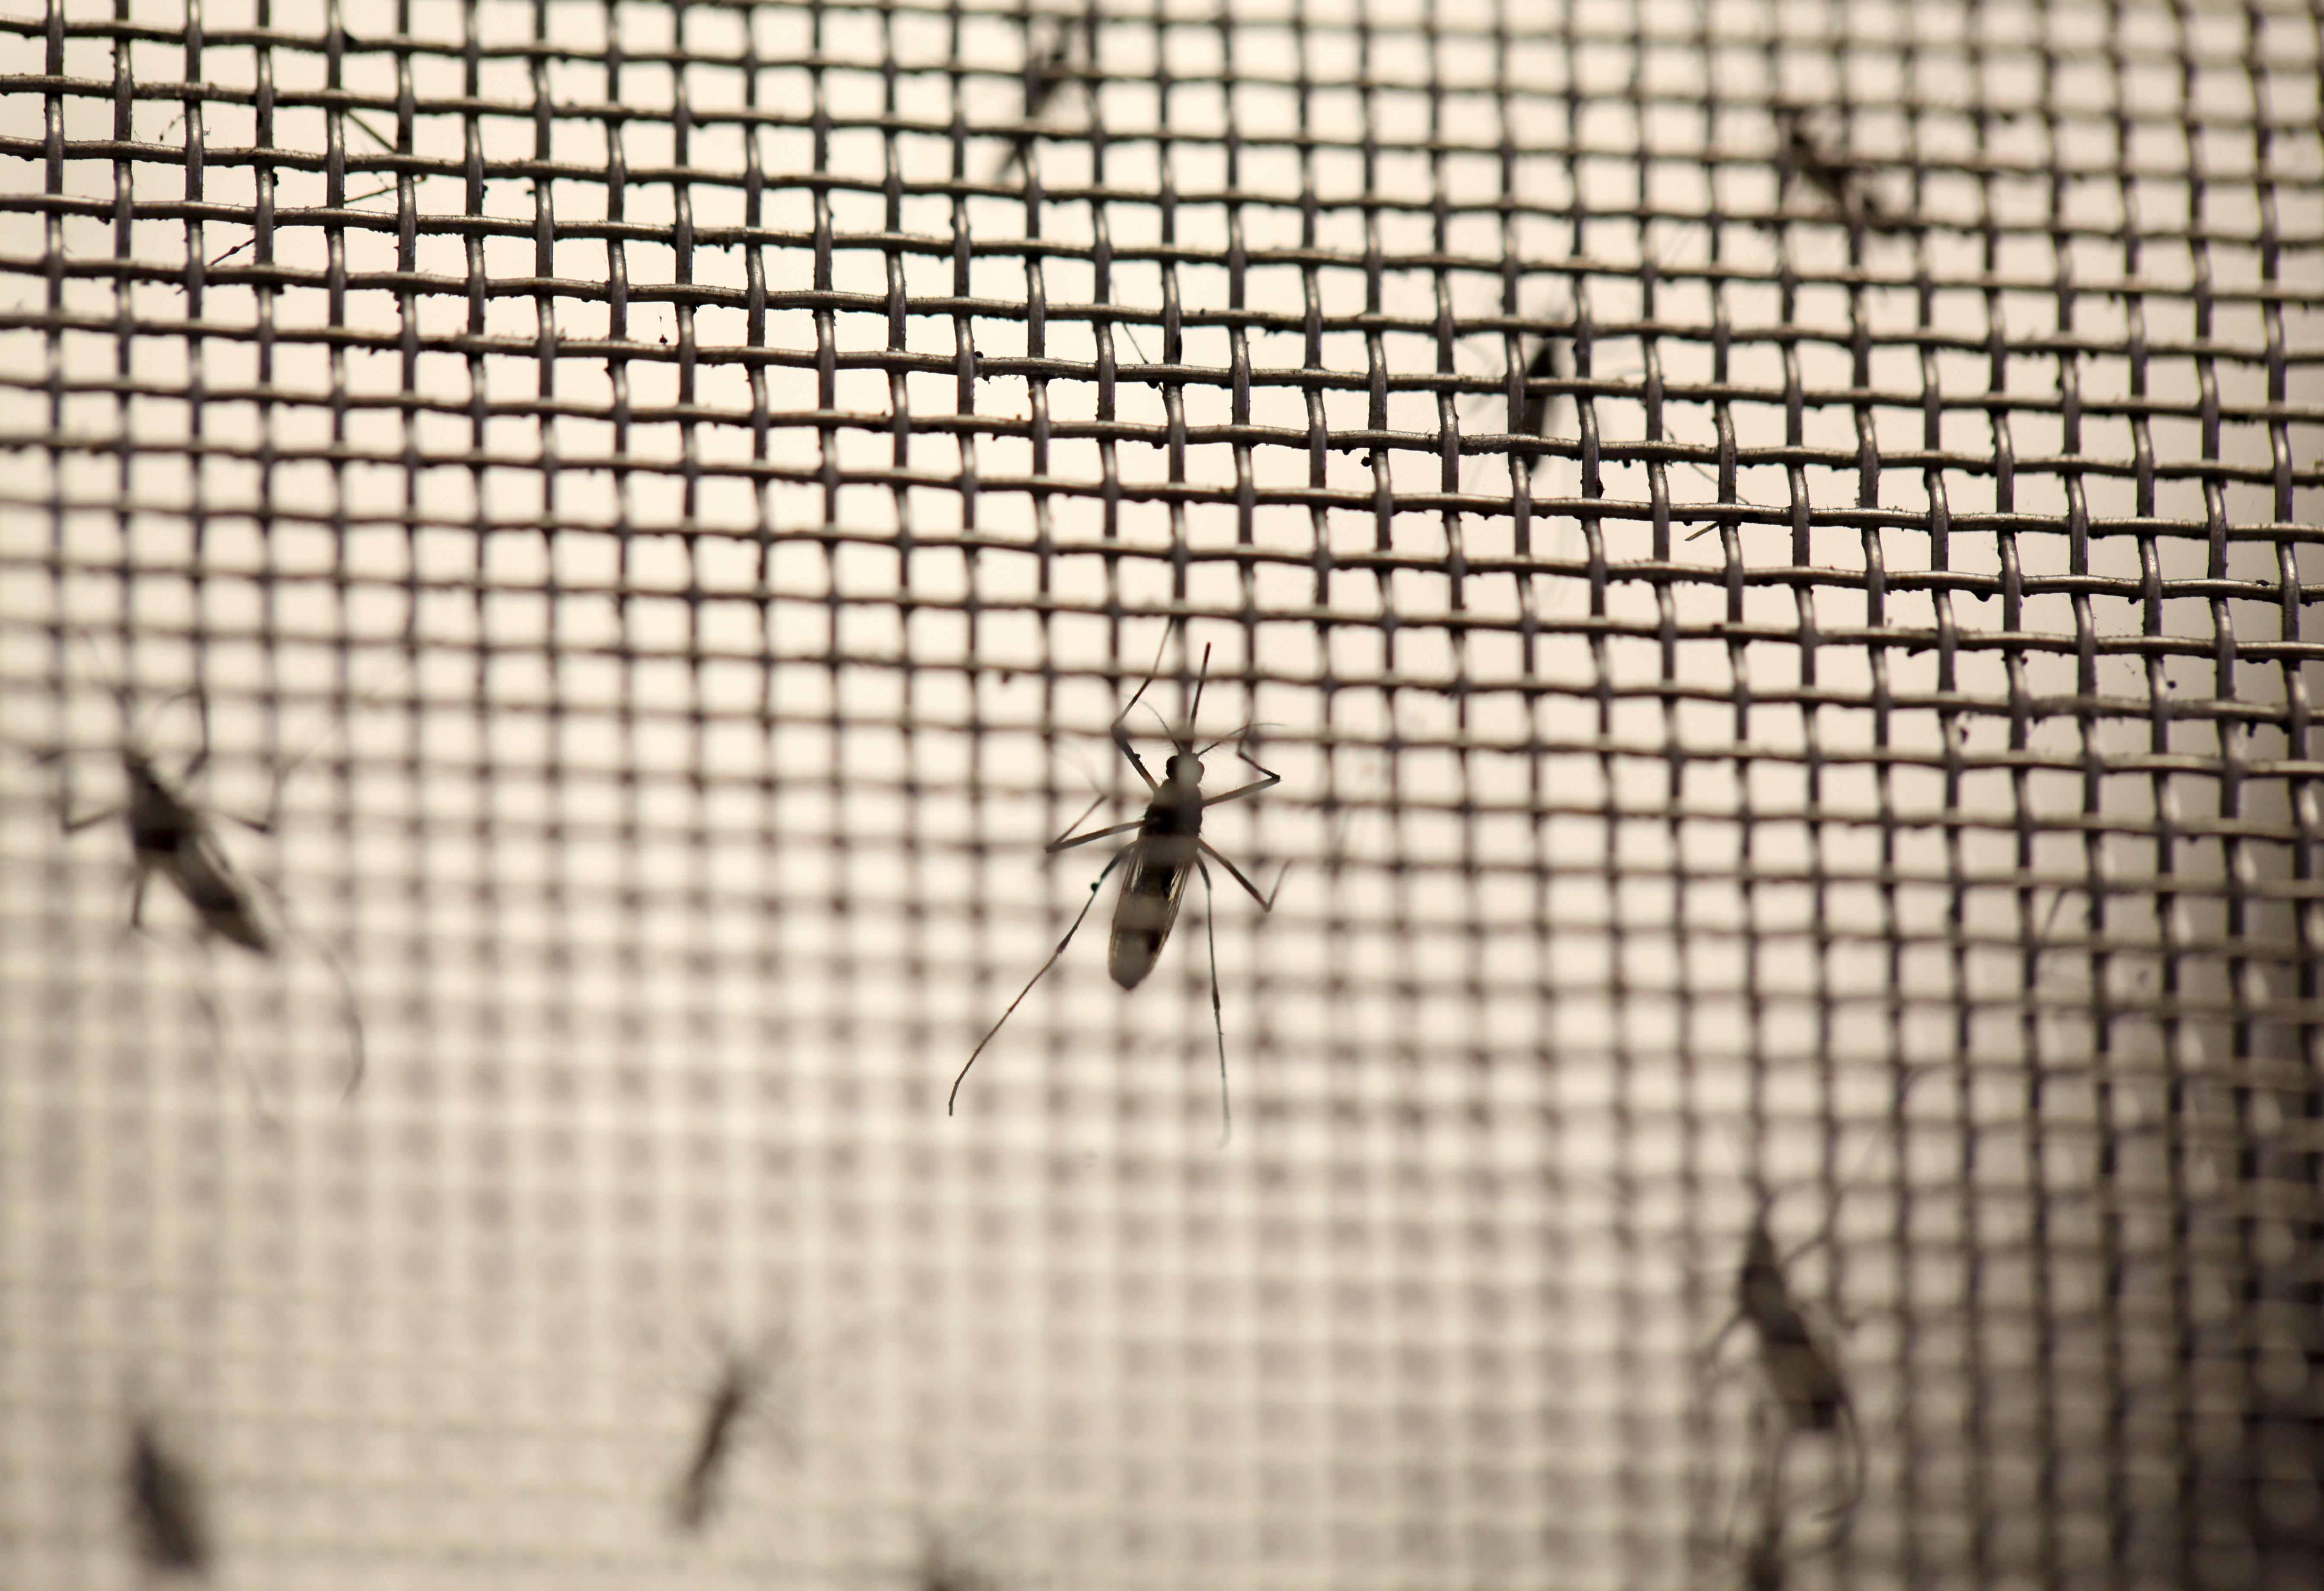 Aedes aegypti mosquitoes